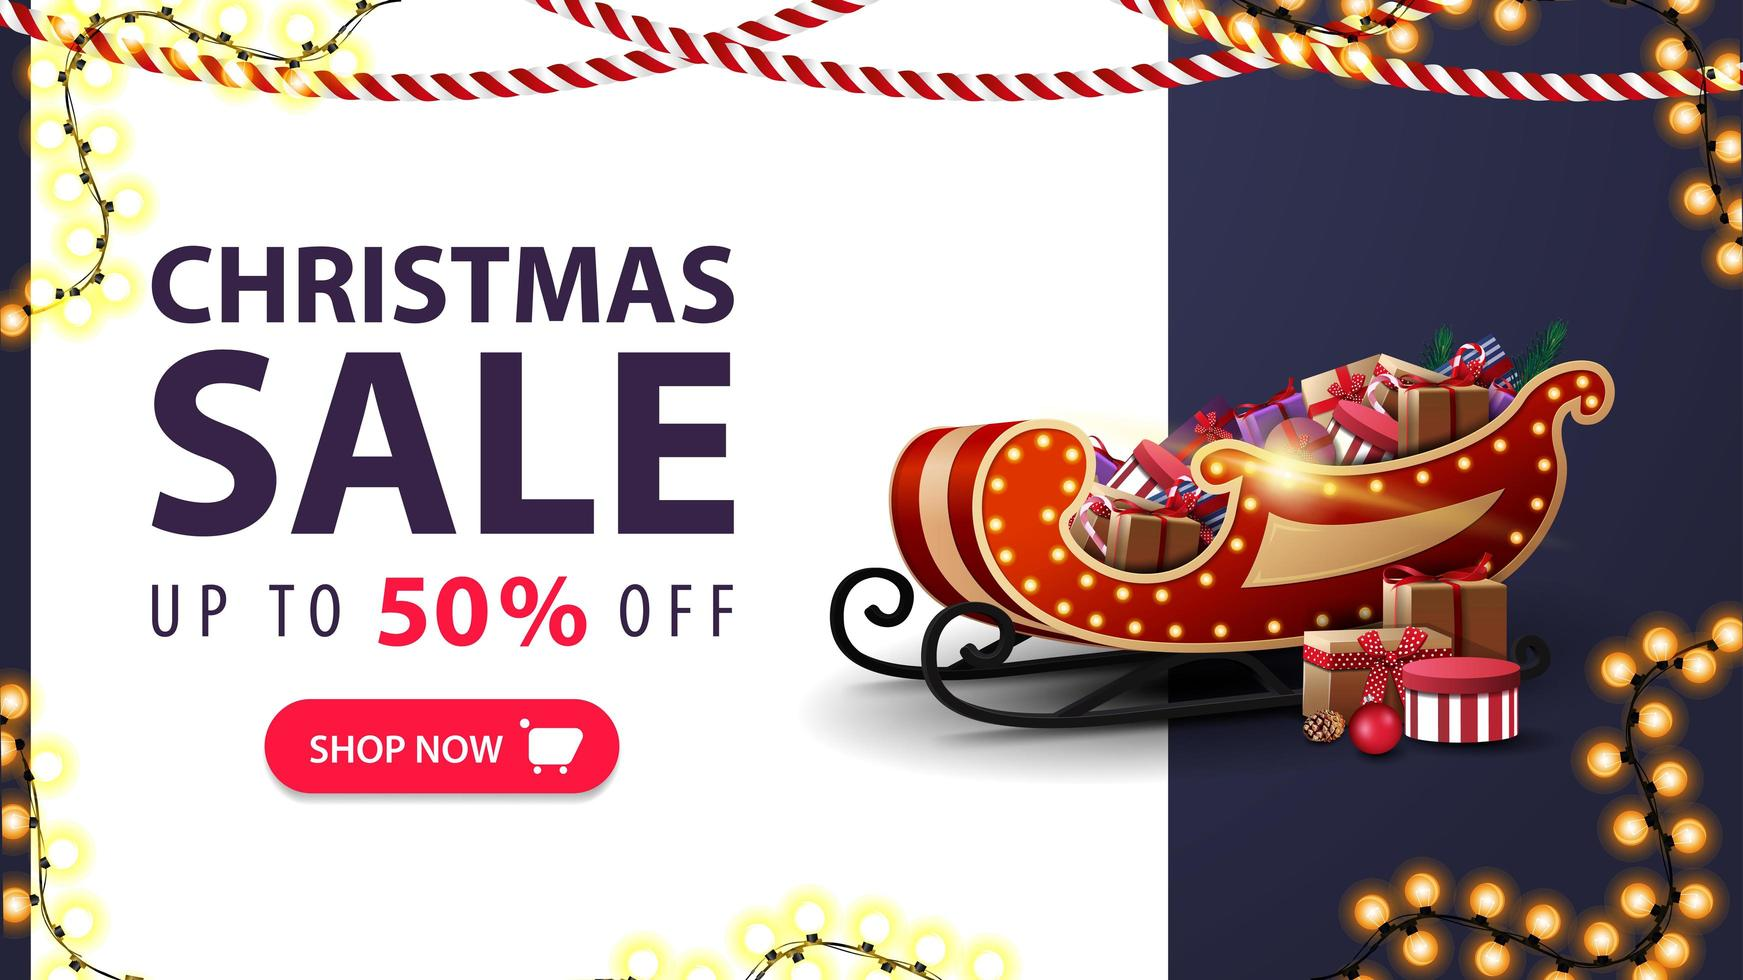 Christmas sale, up to 50 off, white and blue discount banner with Santa Sleigh with presents, garlands and offer with button vector